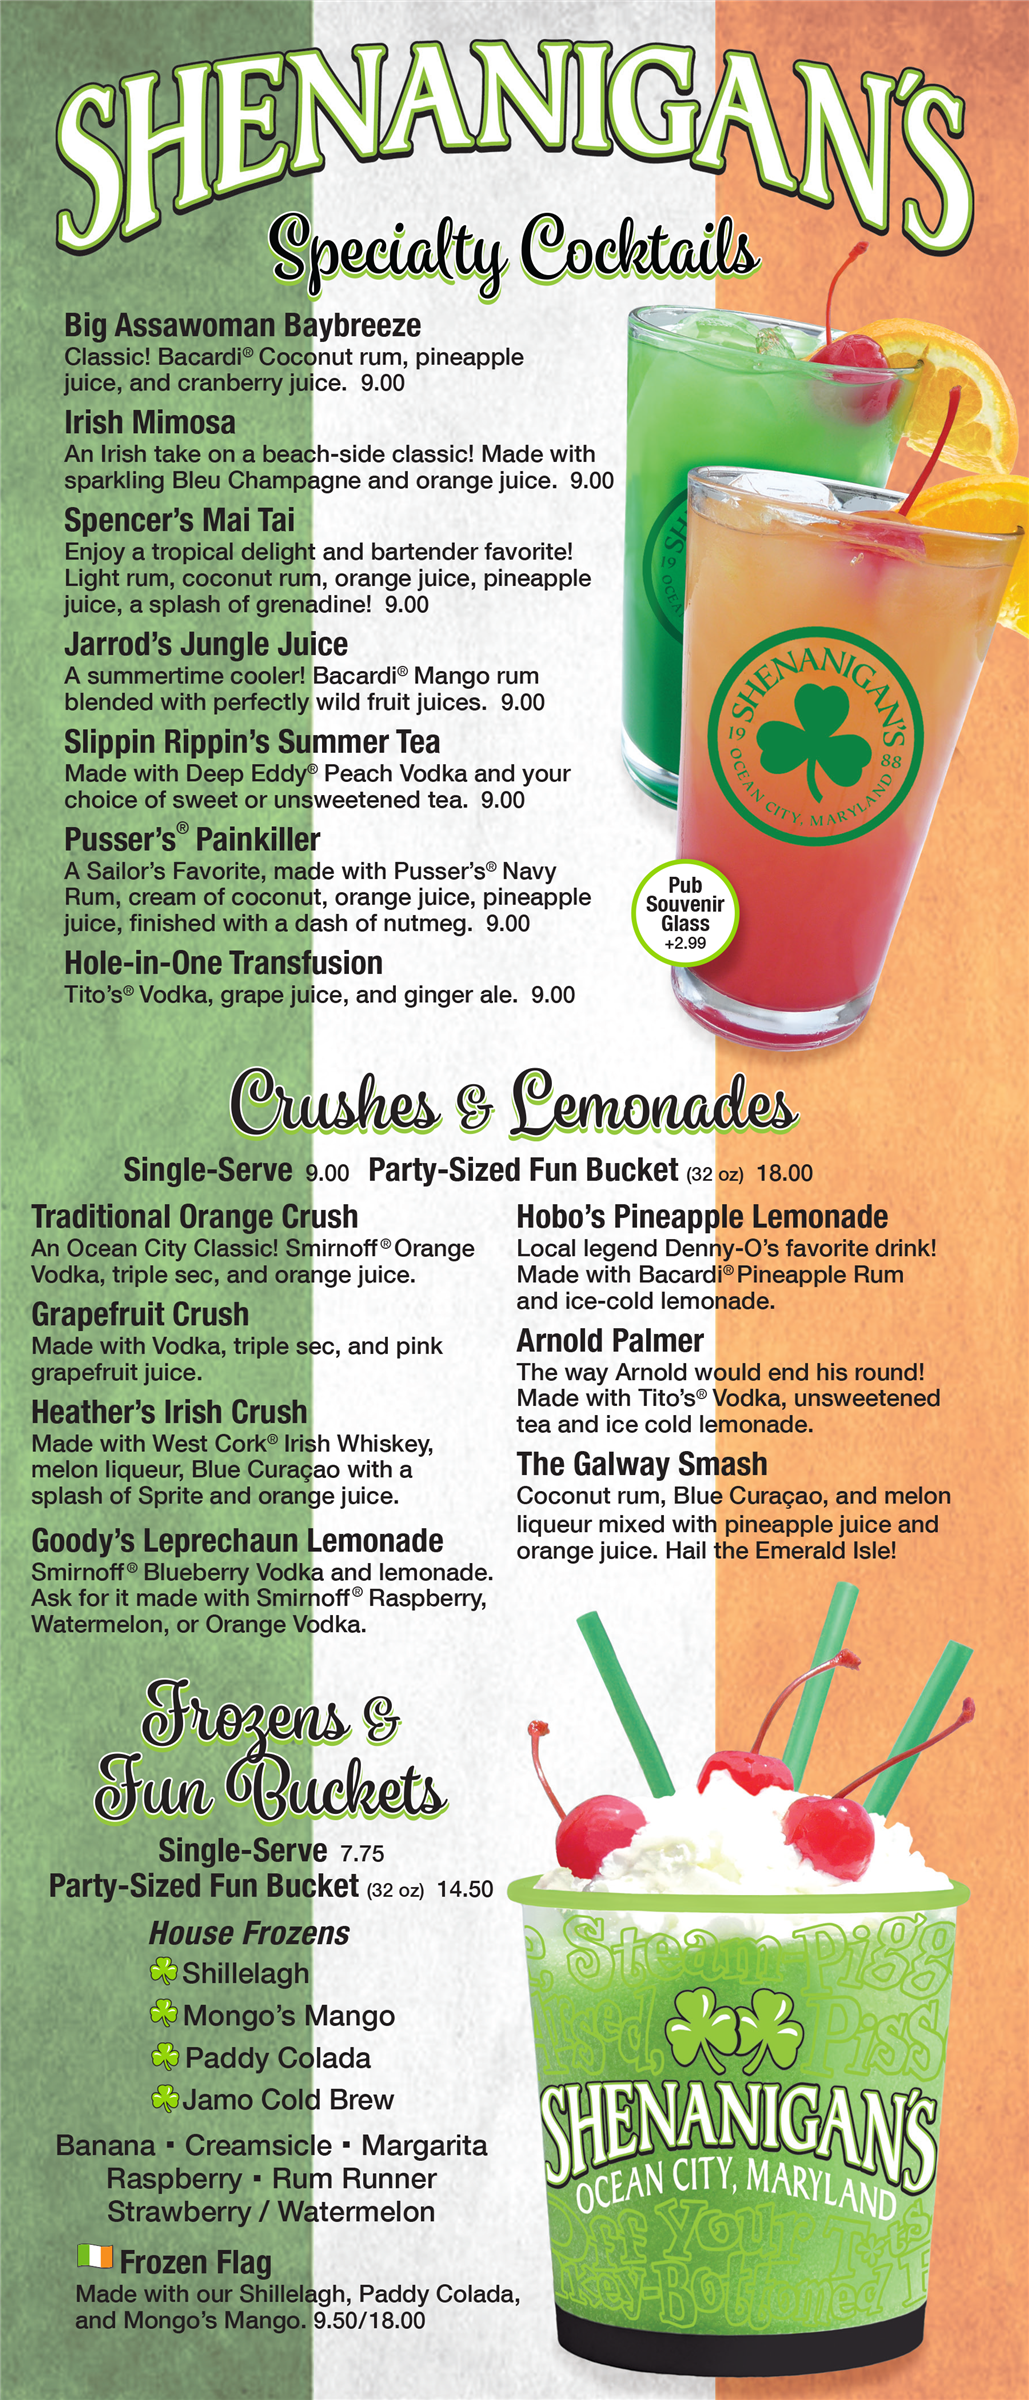 Shenanigan's Specialty Cocktails